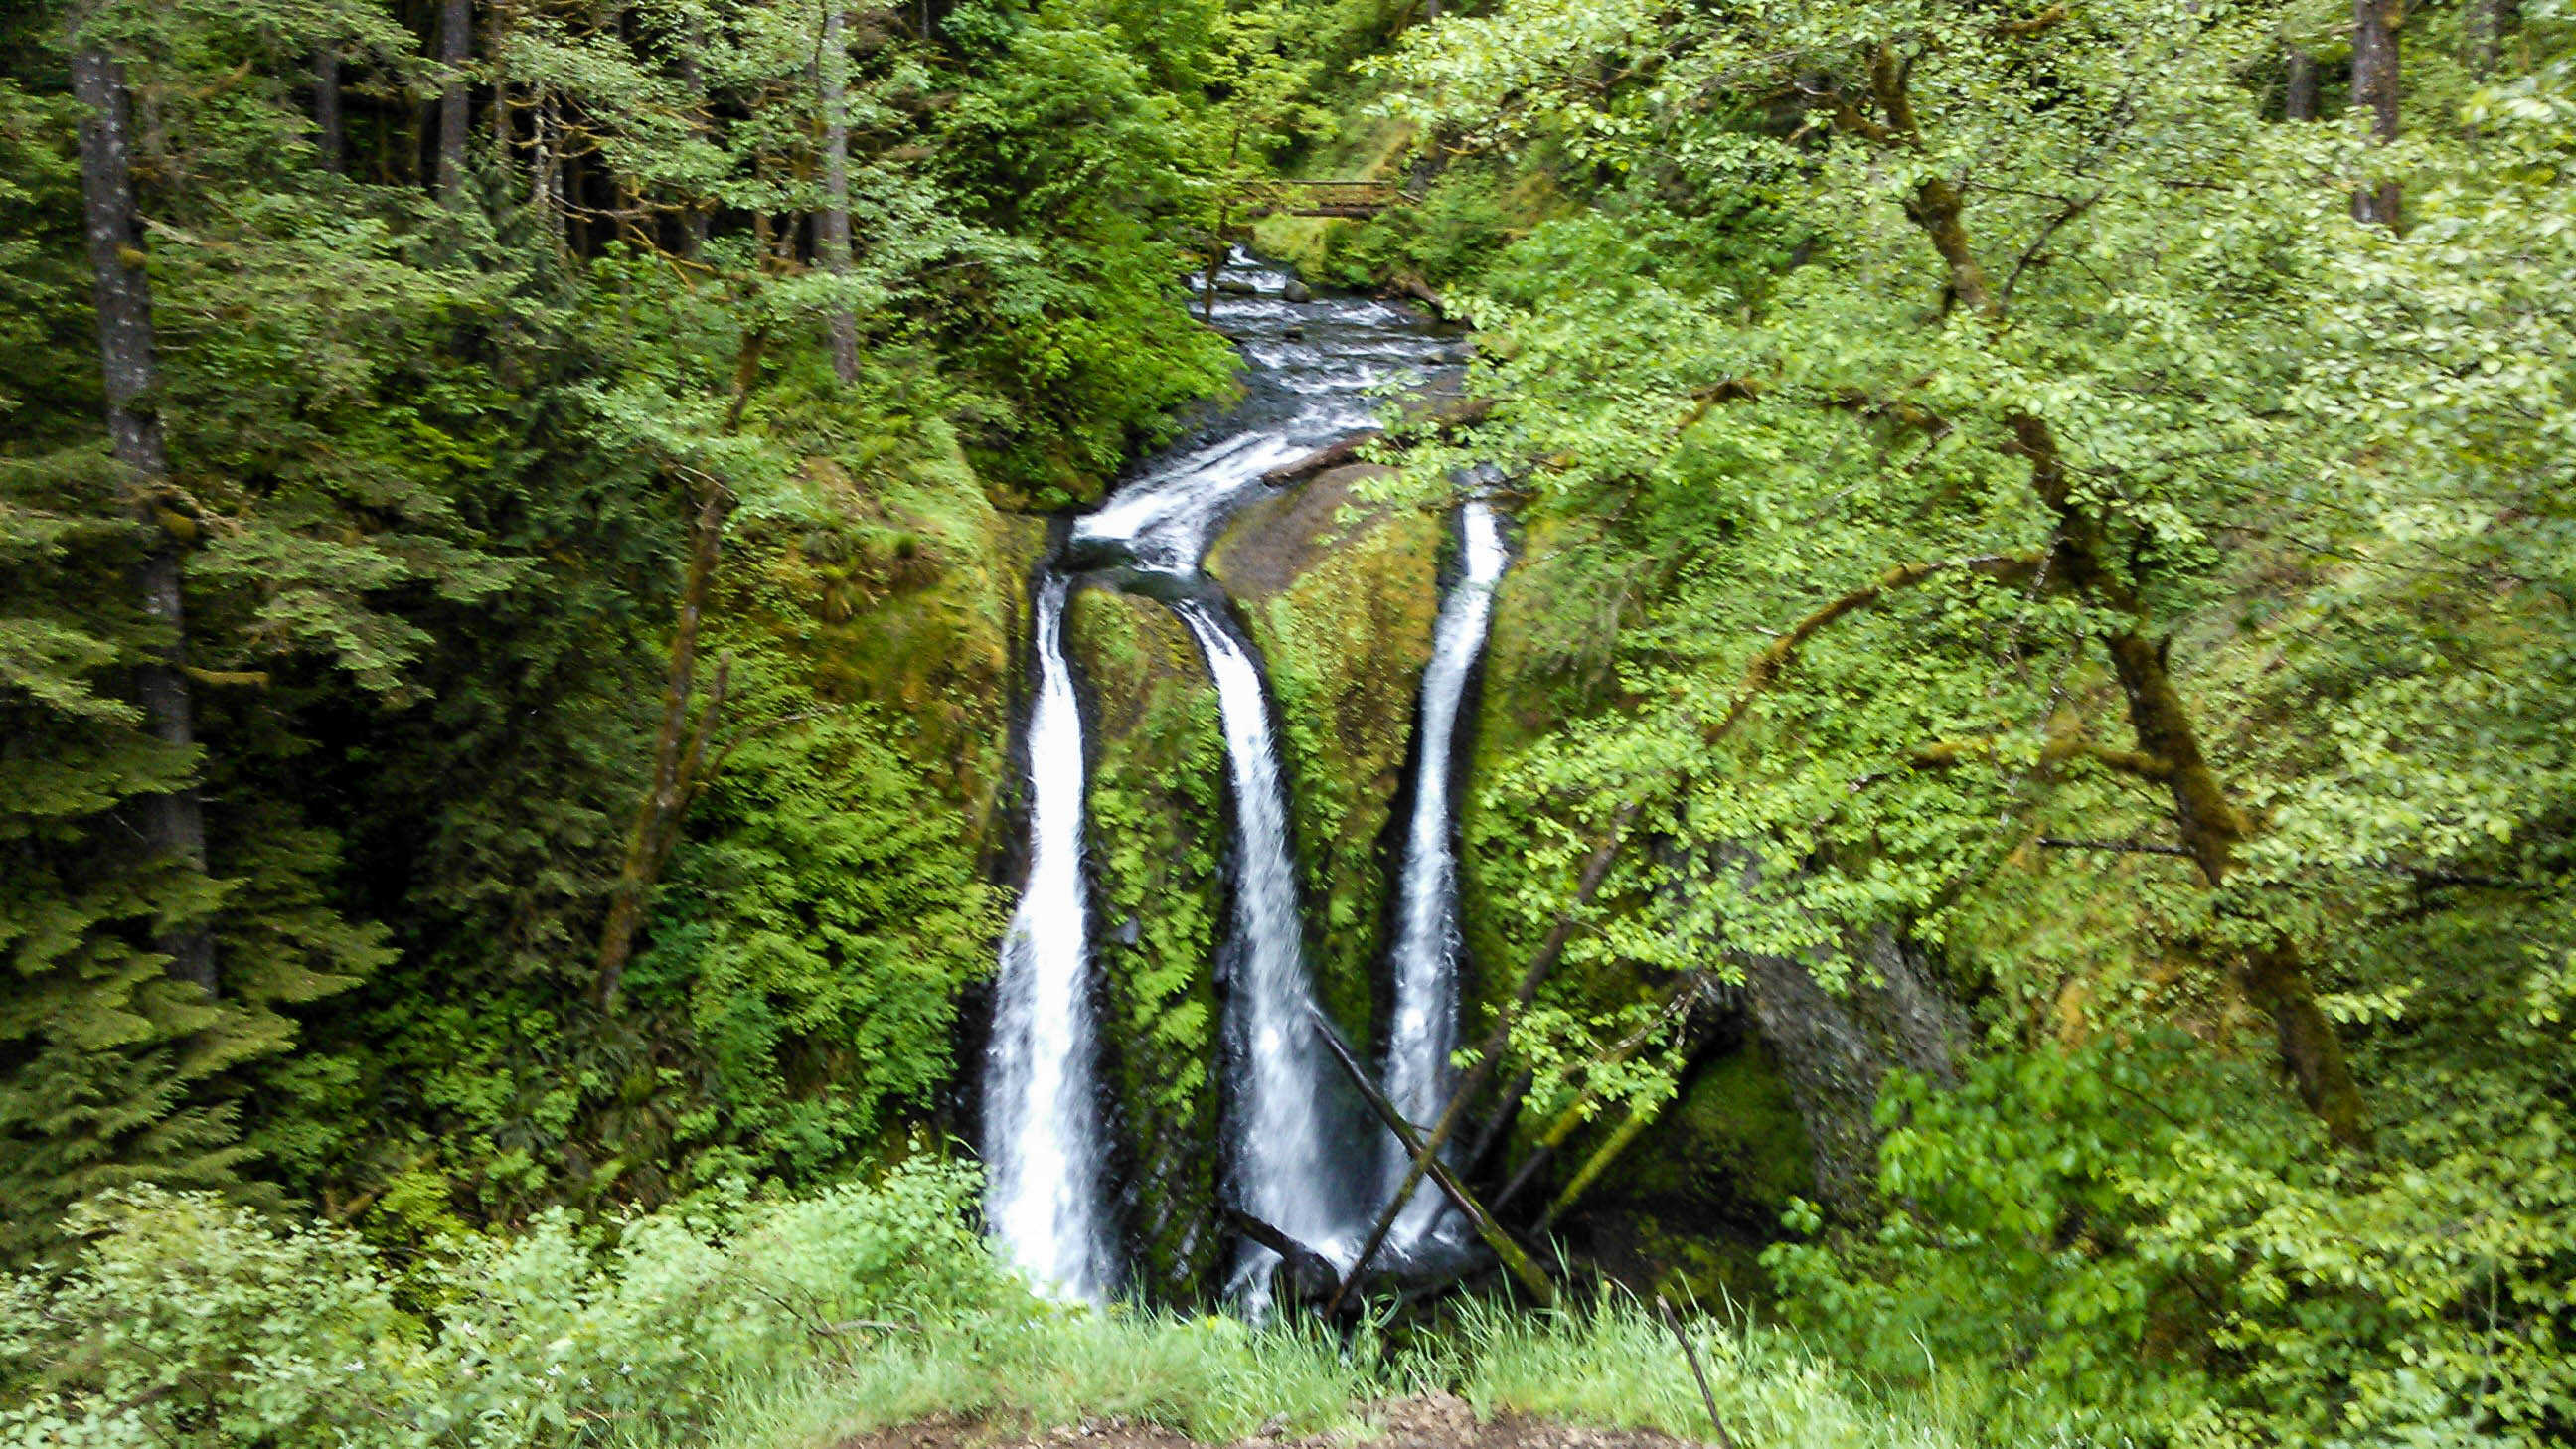 Triple falls: the best waterfall hikes near portland, oregon